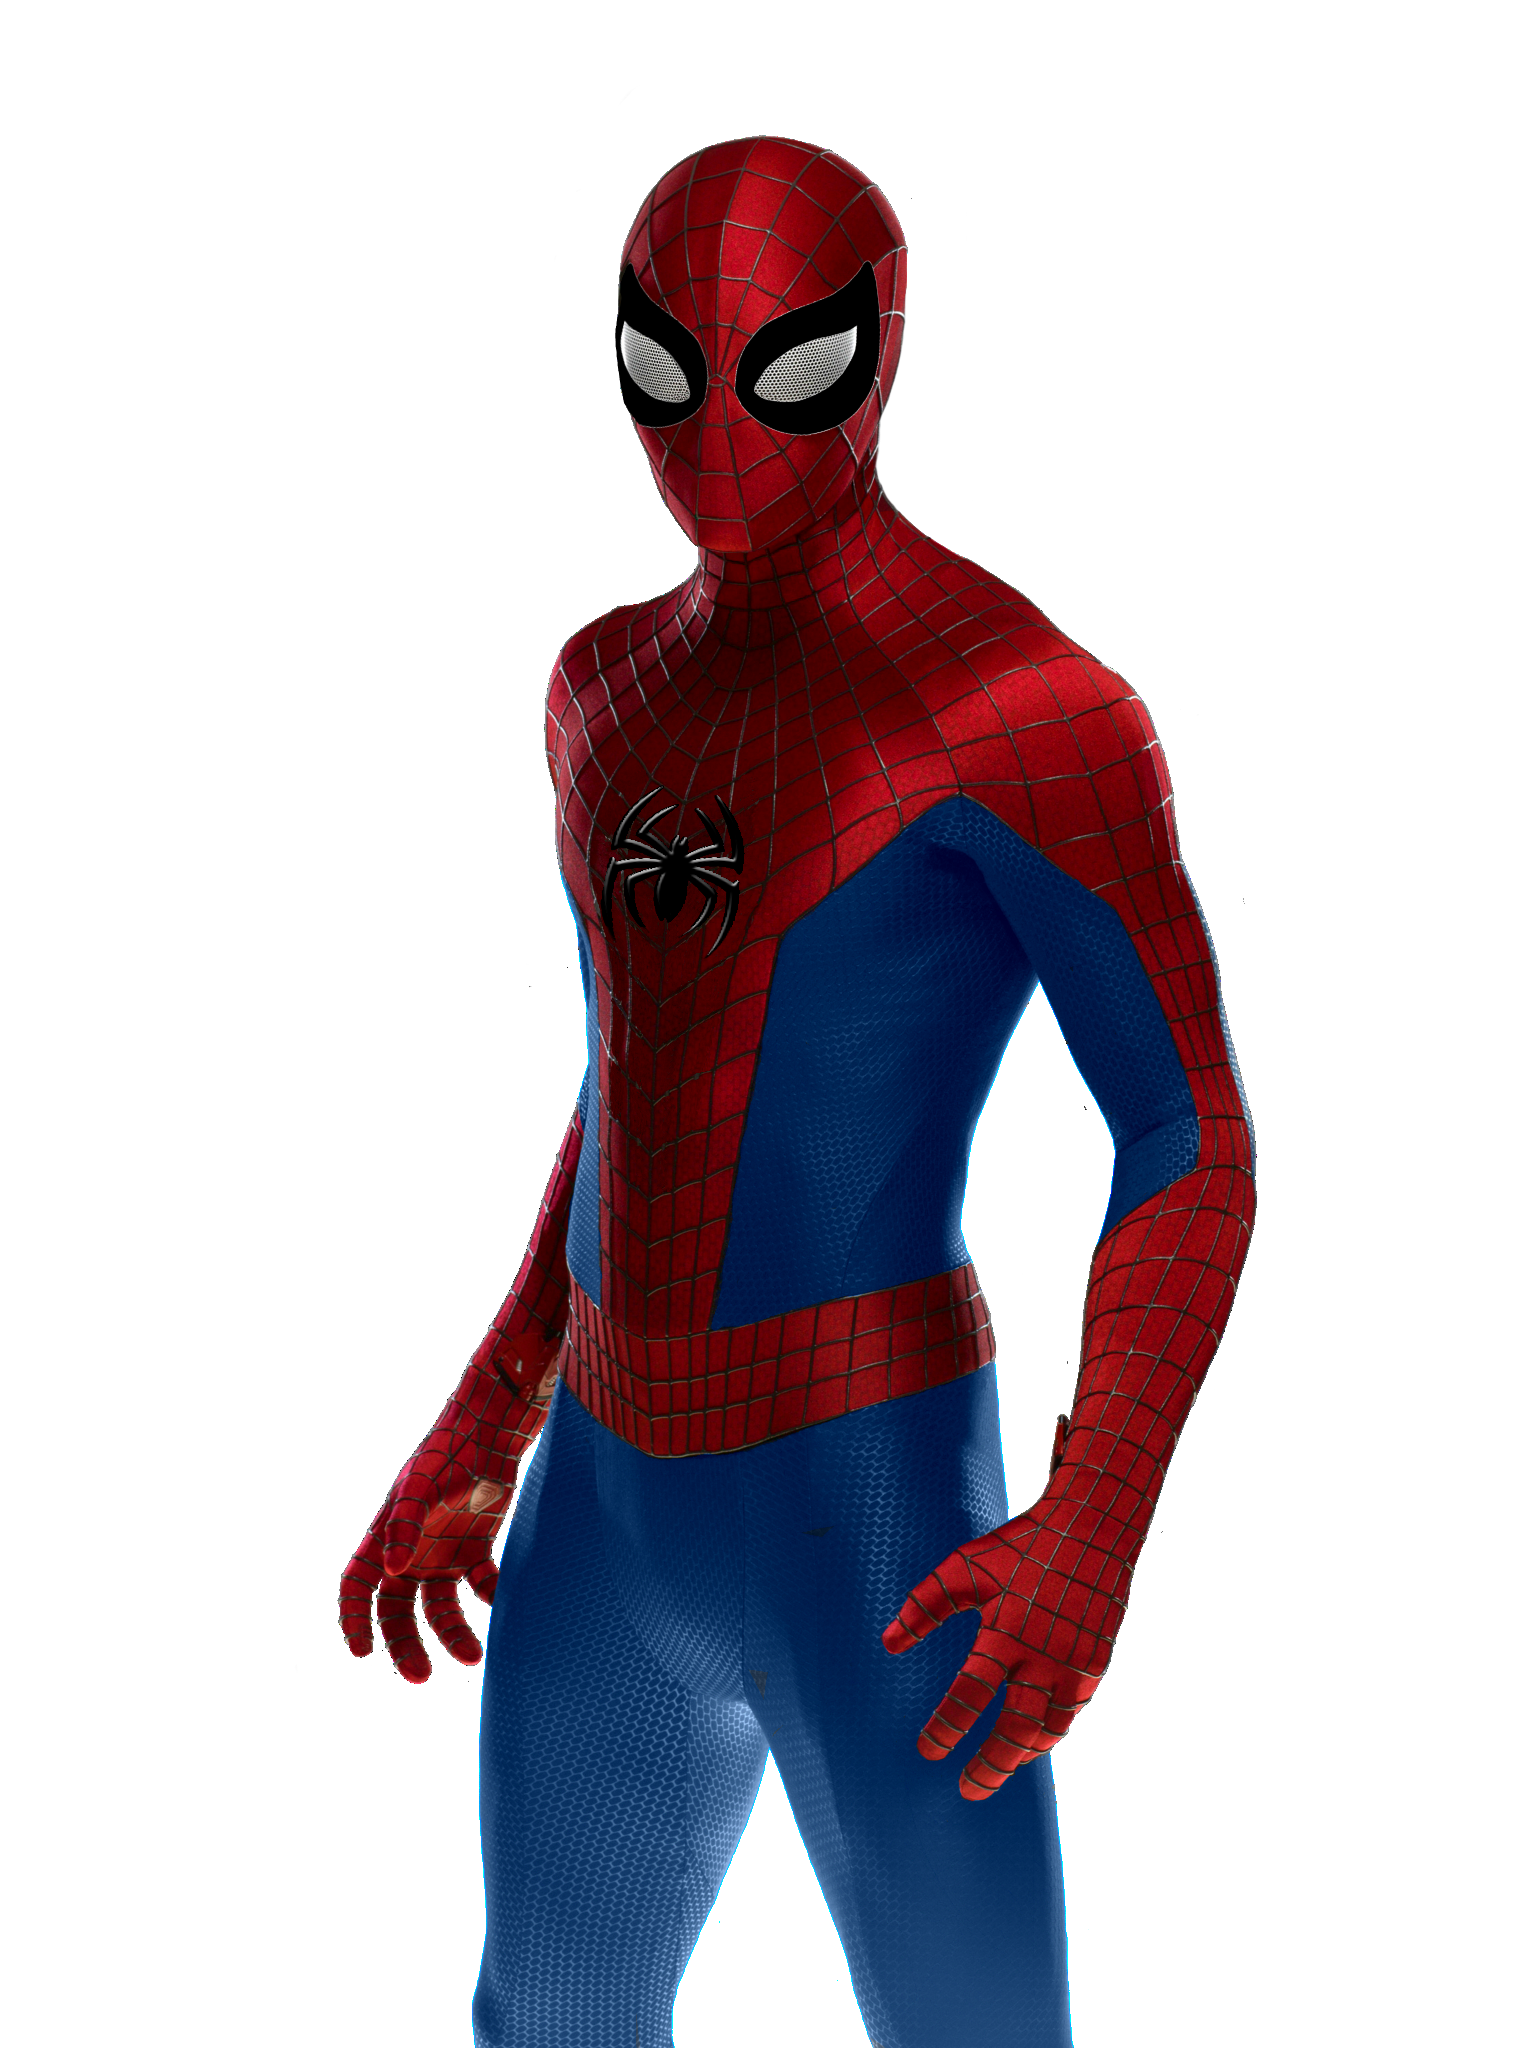 The amazing spider man png. Images free download spiderman